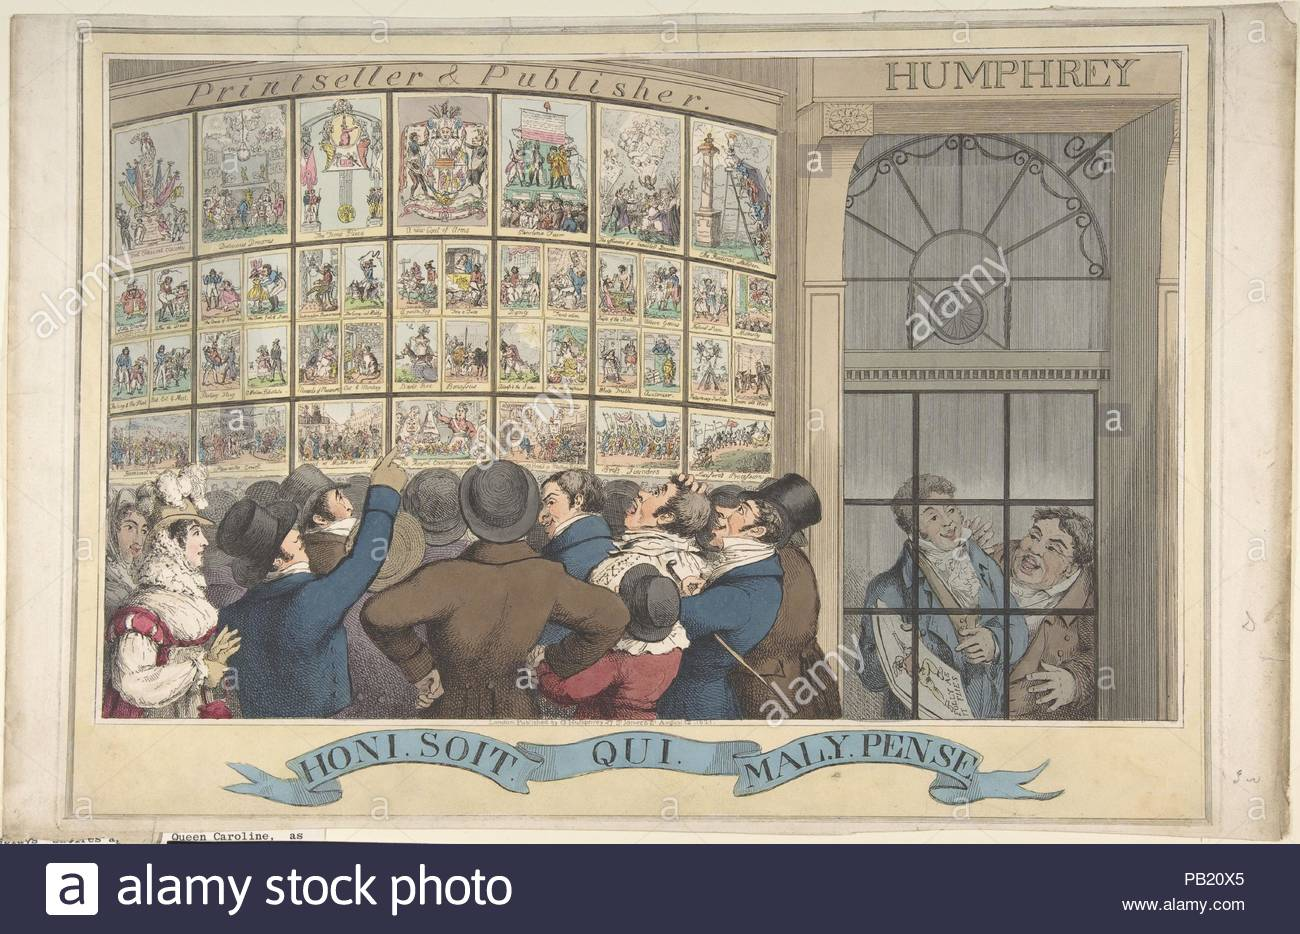 Honi. Soi. Qui. Mal. Y. Pense: The Caricature Shop of G. Humphrey, 27 St. James's Street, London. Artist: Theodore Lane (British, Isleworth ca. 1800-1828 London). Dimensions: plate: 11 13/16 x 16 7/8 in. (30 x 42.8 cm)  sheet: 11 7/8 x 18 9/16 in. (30.2 x 47.2 cm). Publisher: Published London by George Humphrey (British, 1773?-?1831). Date: August 12, 1821.  A crowd of boisterous Londoners is shown inspecting satires critical of Queen Caroline, the estranged wife of the recently crowned King George IV. These are displayed in the bow-front shop window of George Humphrey, a print publisher who i - Stock Image